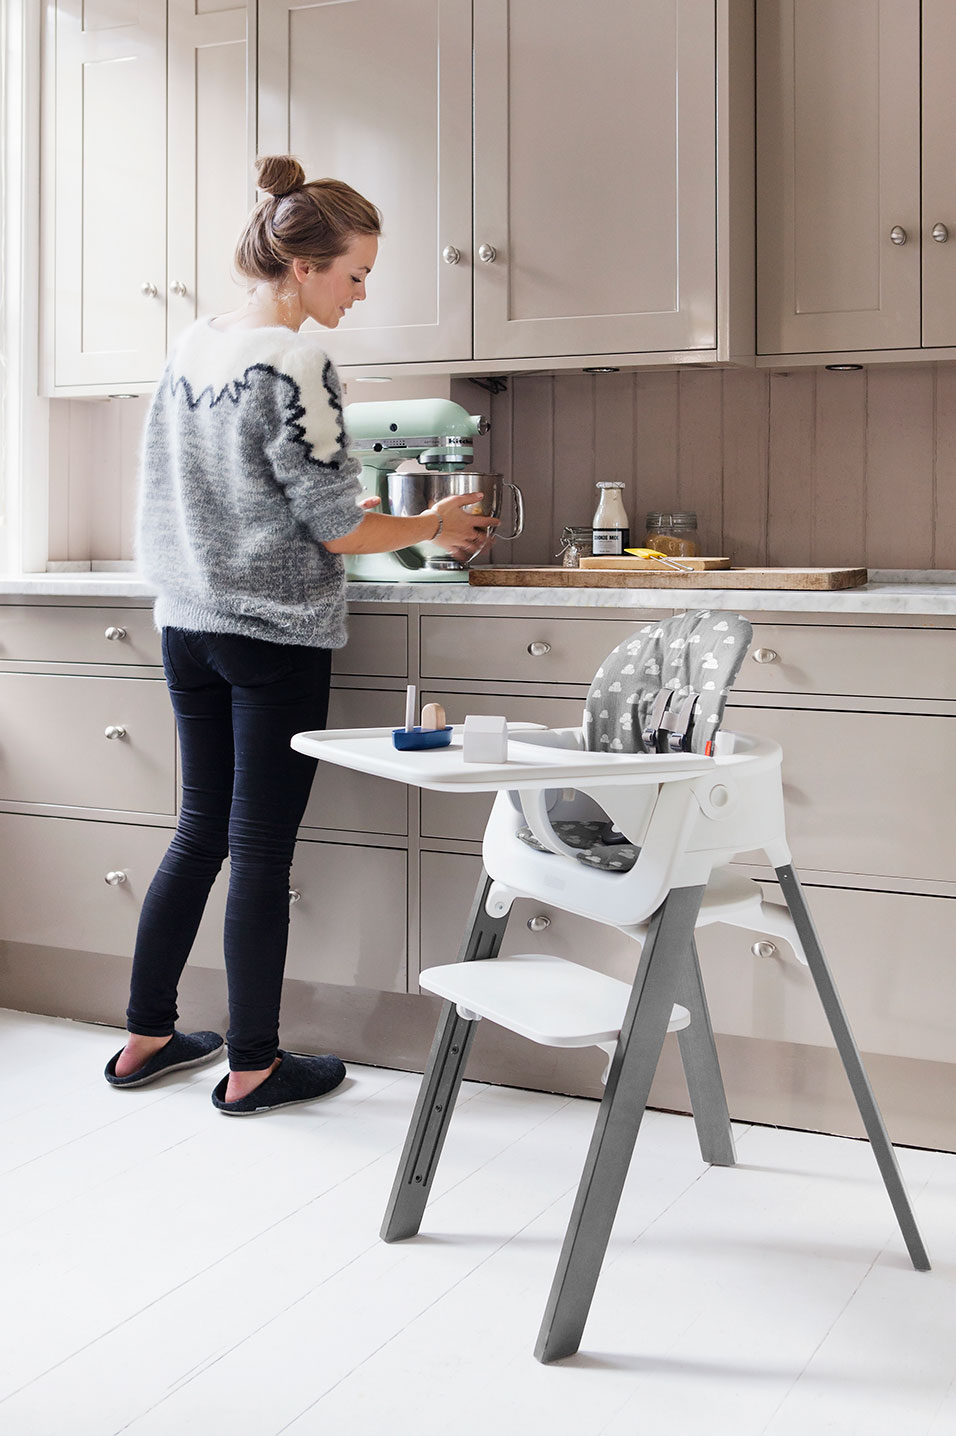 Stokke 174 Launches Their Steps Soft Cushioned Bouncer In